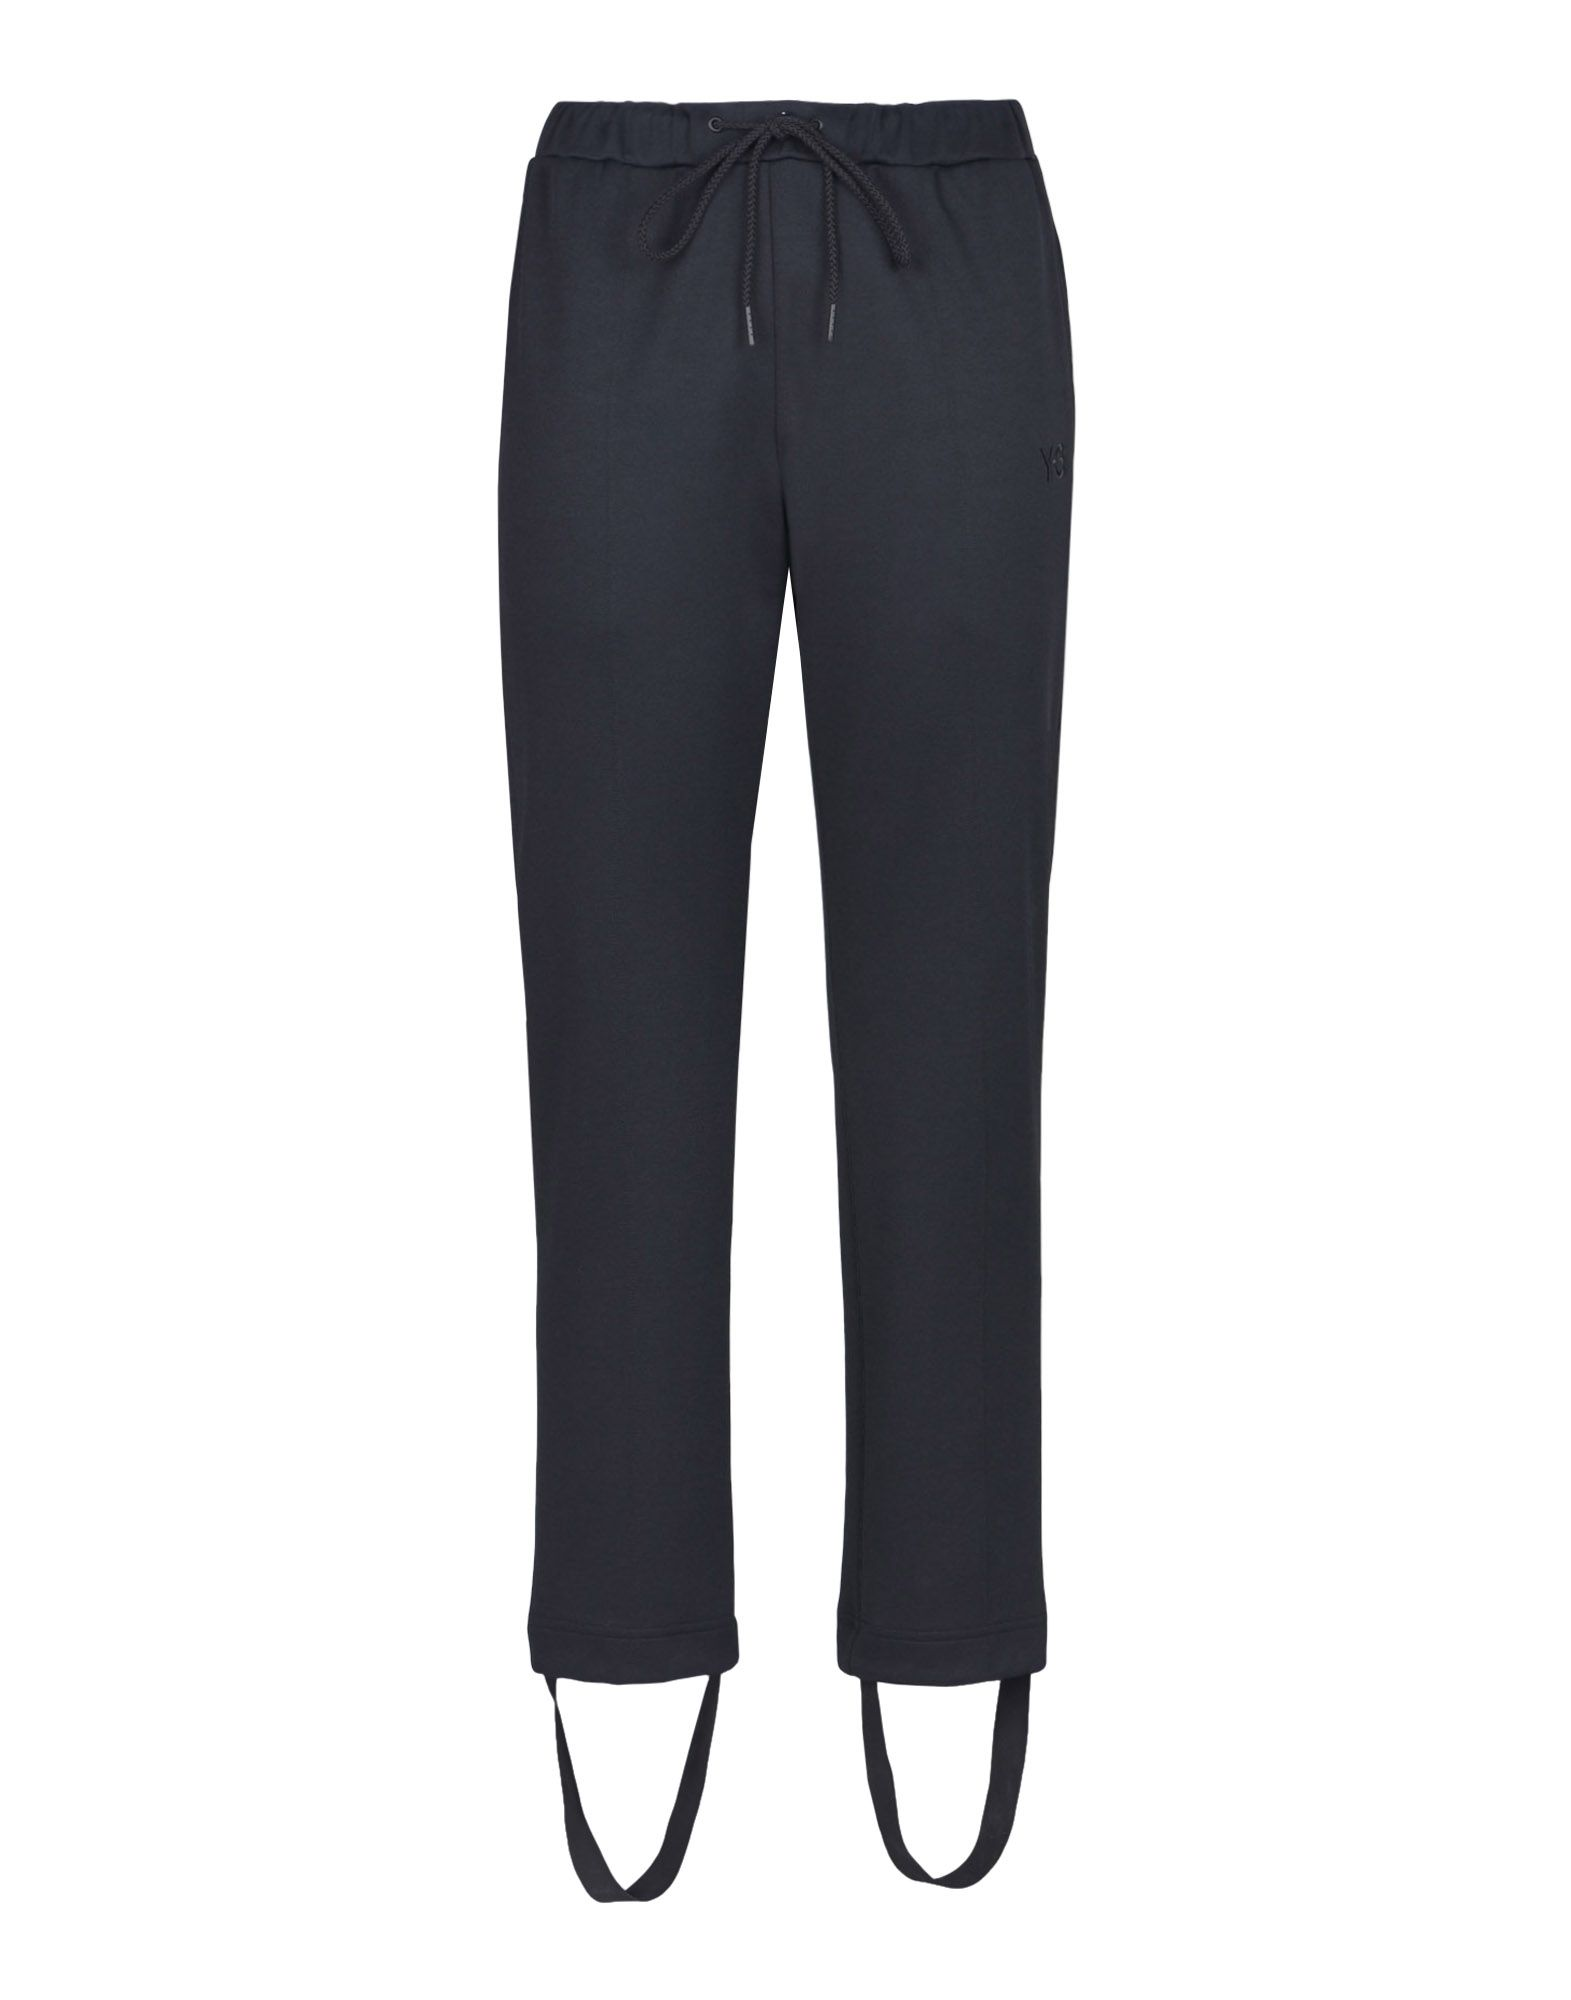 Y 3 CORE TRACK PANT PANTS woman Y 3 adidas